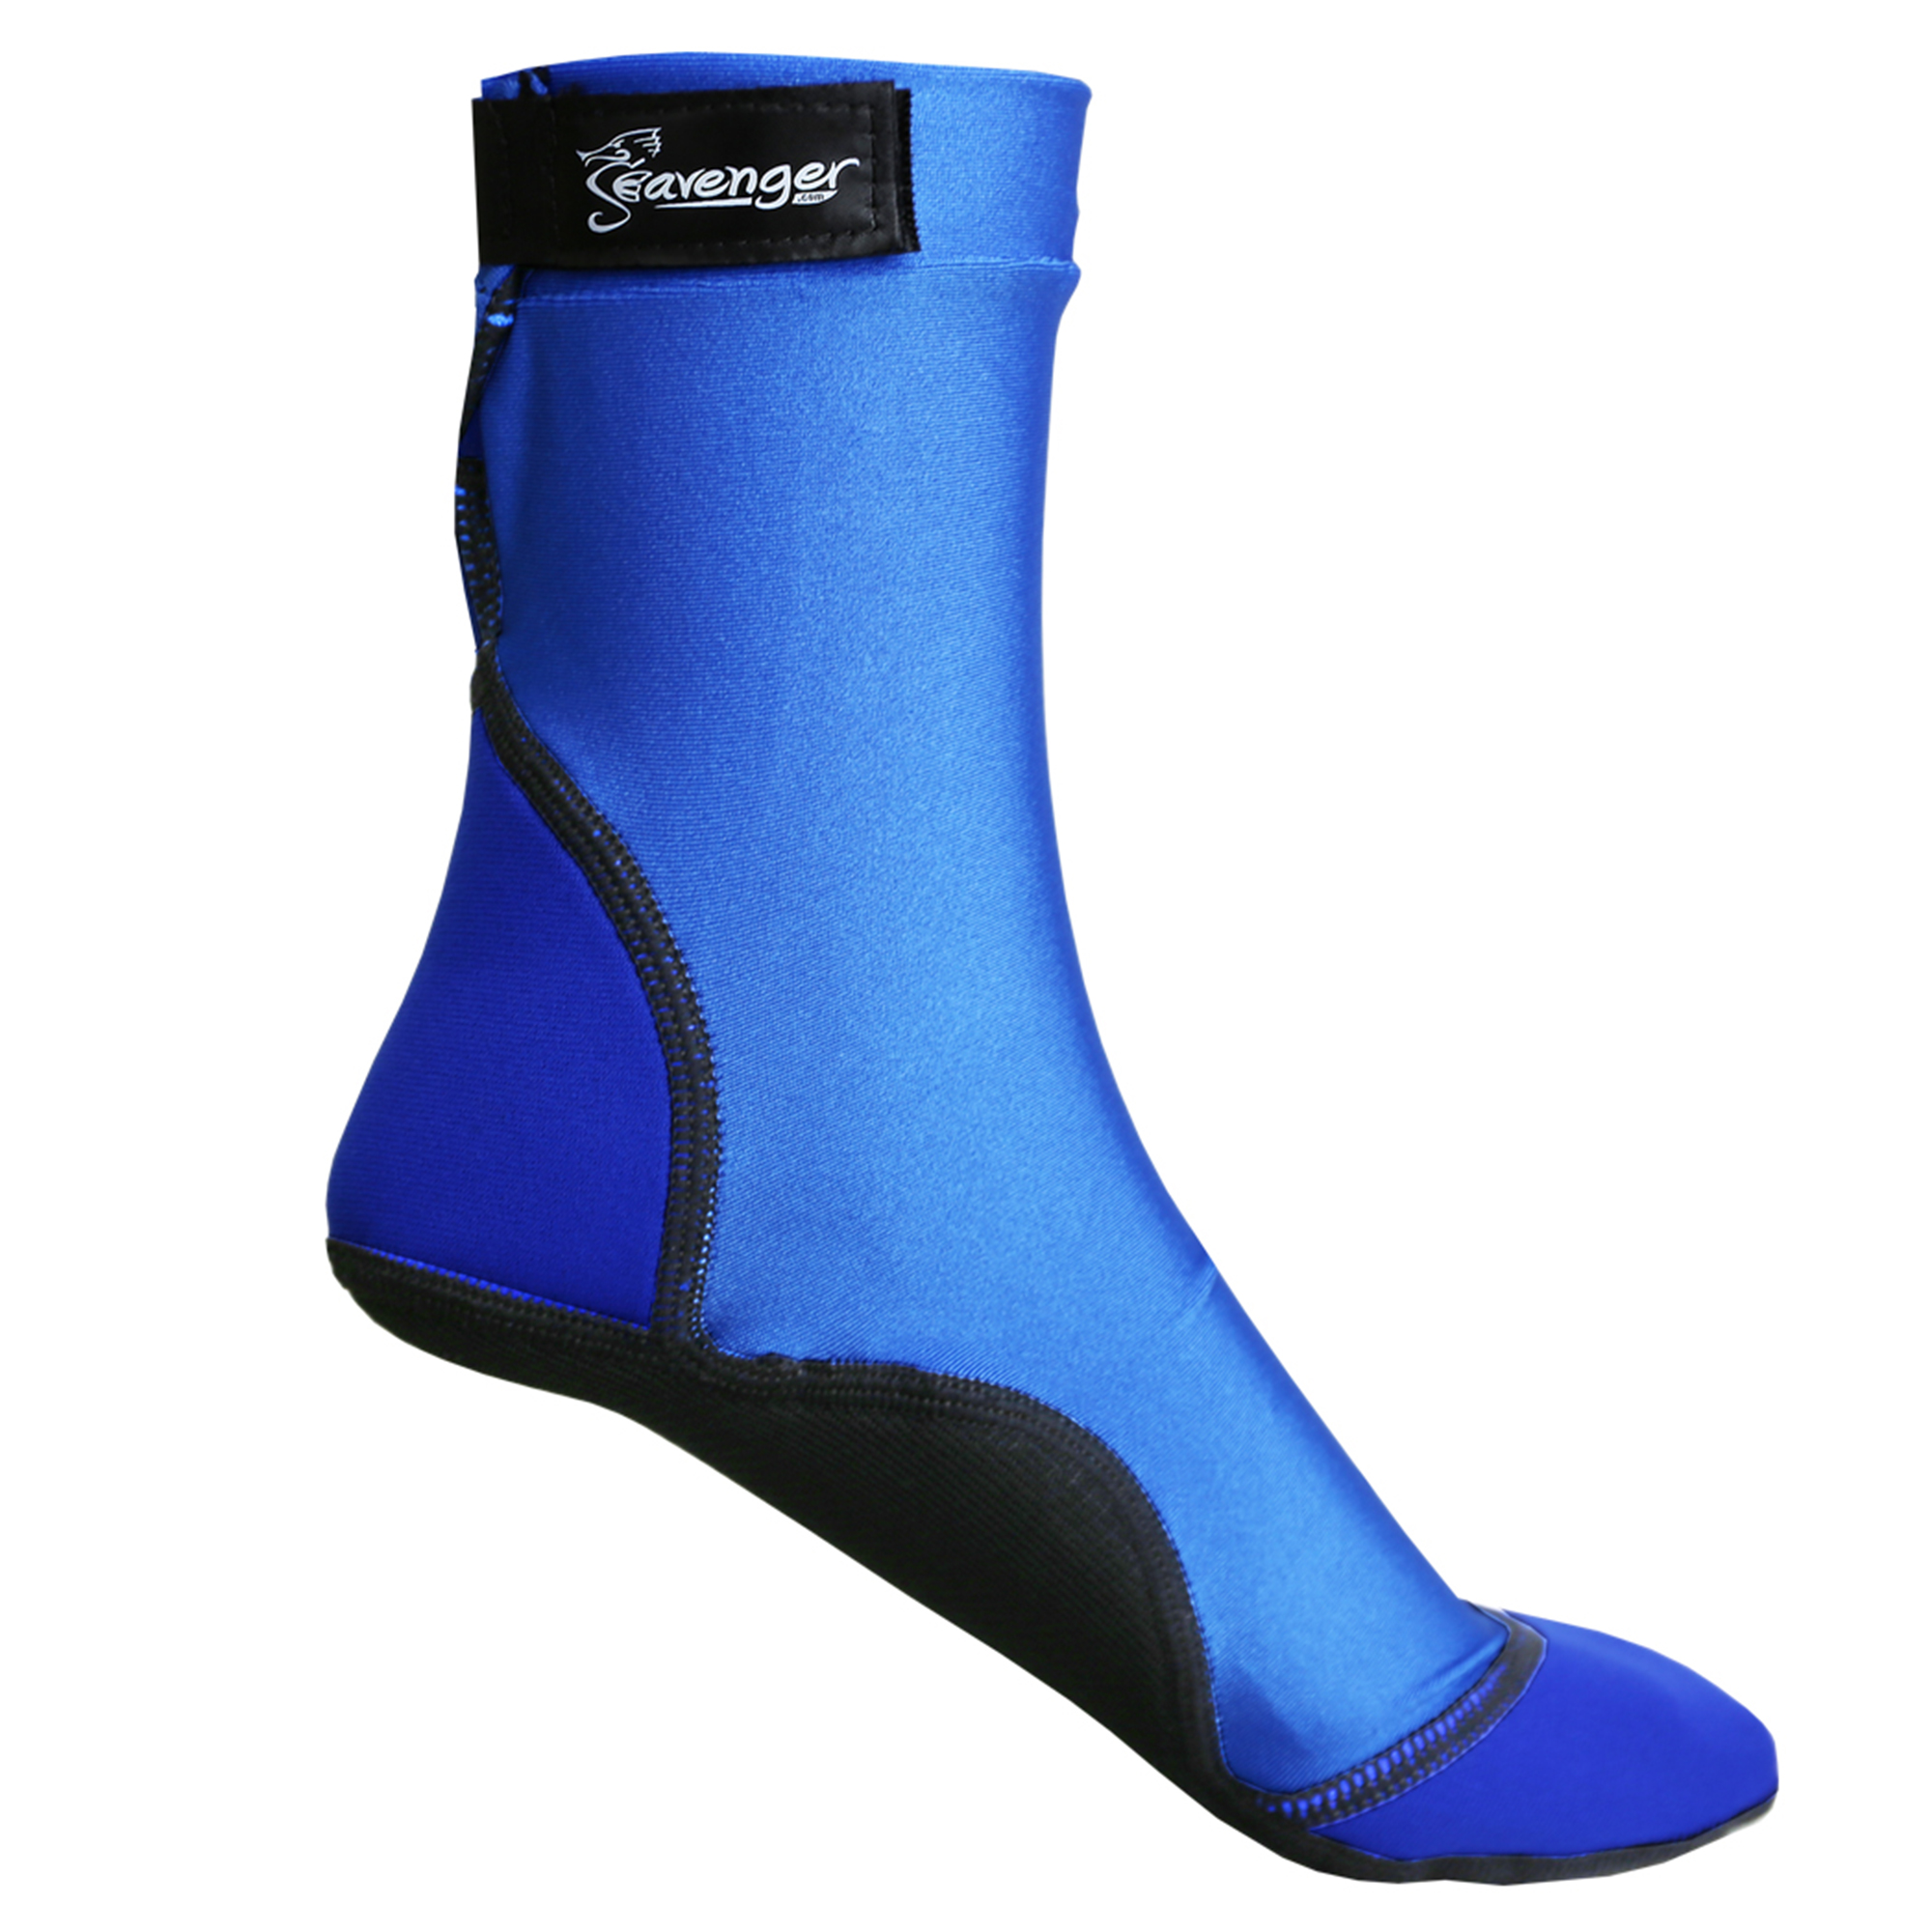 Seavenger High Cut Beach Socks with Grip Sole for Sand, Volleyball, Snorkeling, Diving, Wading (Blue, Large)